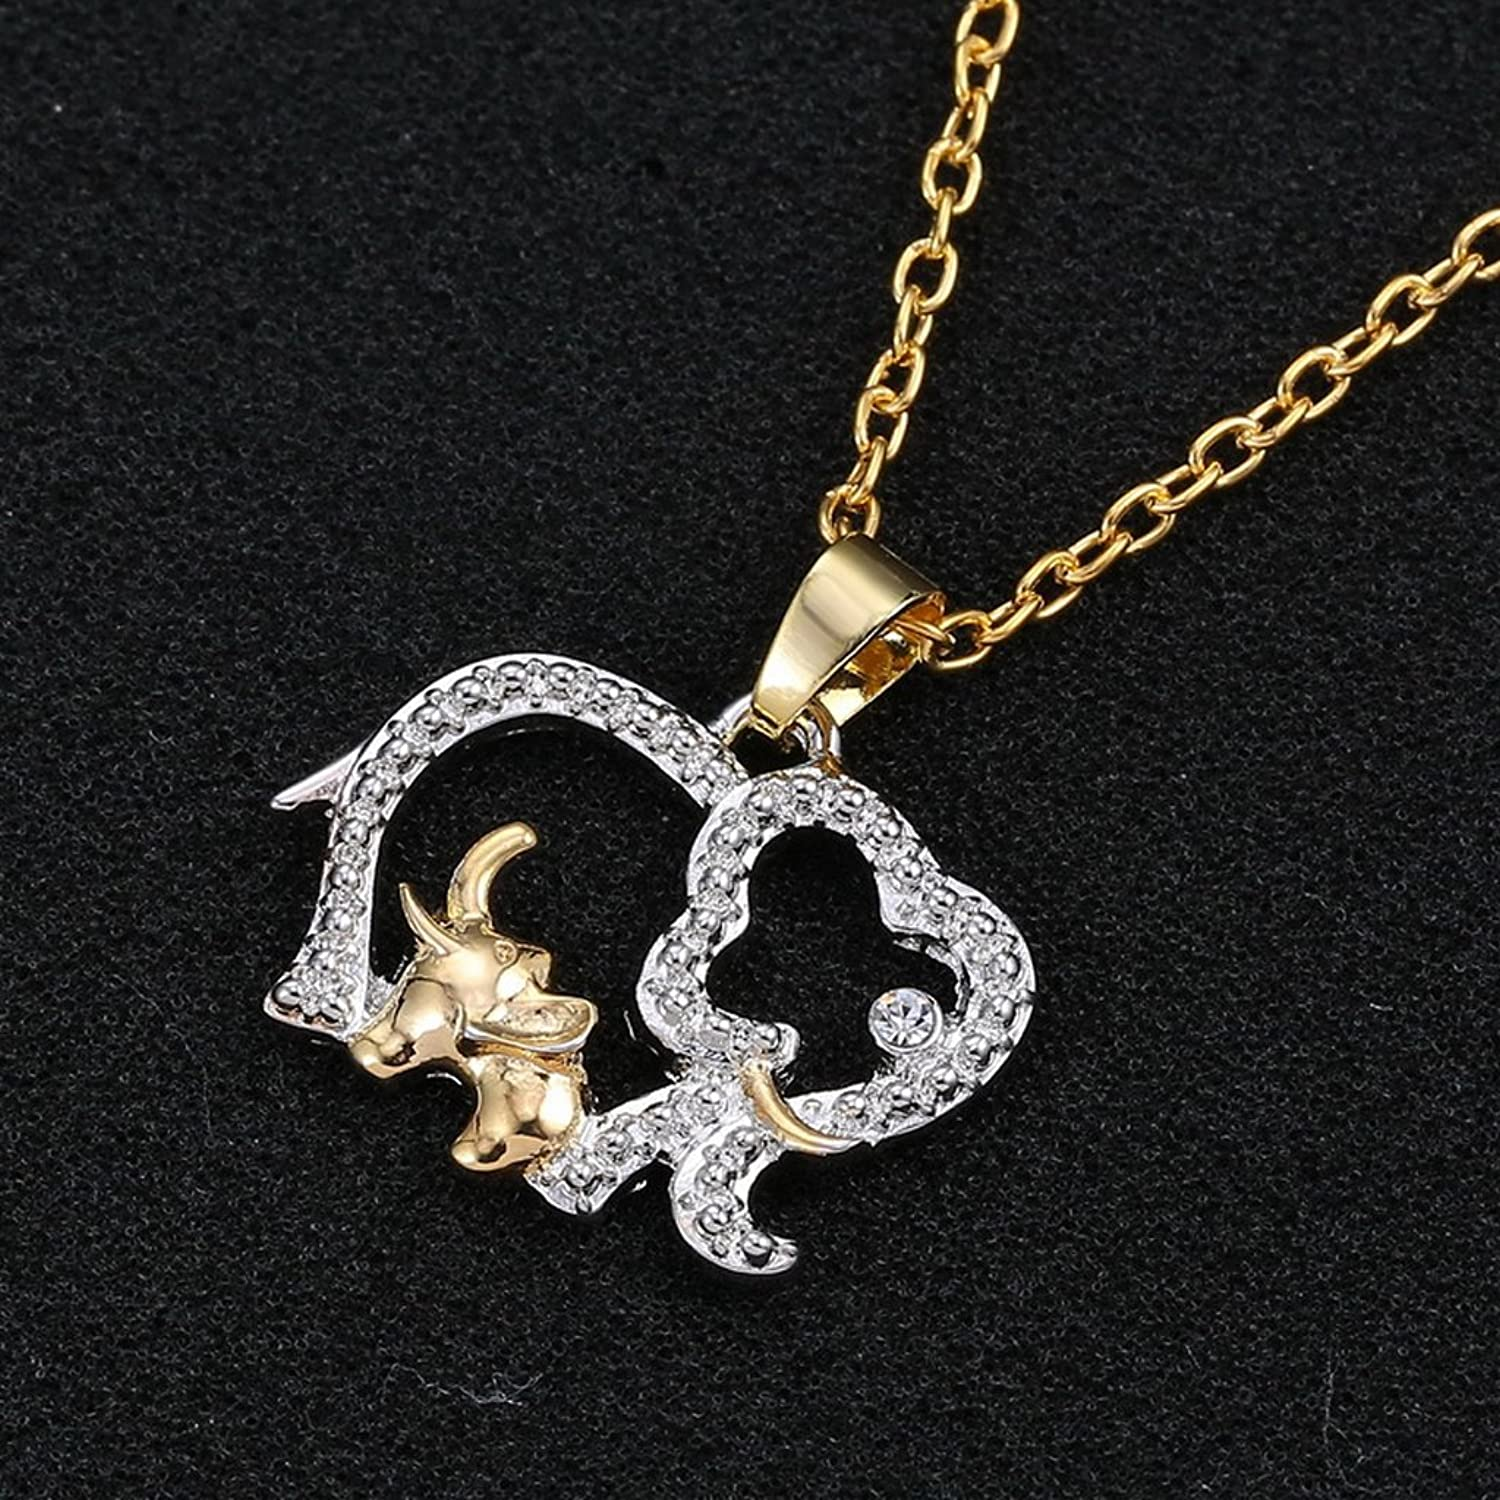 Amazon magideal elephant mom and baby pendant necklace for amazon magideal elephant mom and baby pendant necklace for mother gift gold silver jewelry mozeypictures Image collections